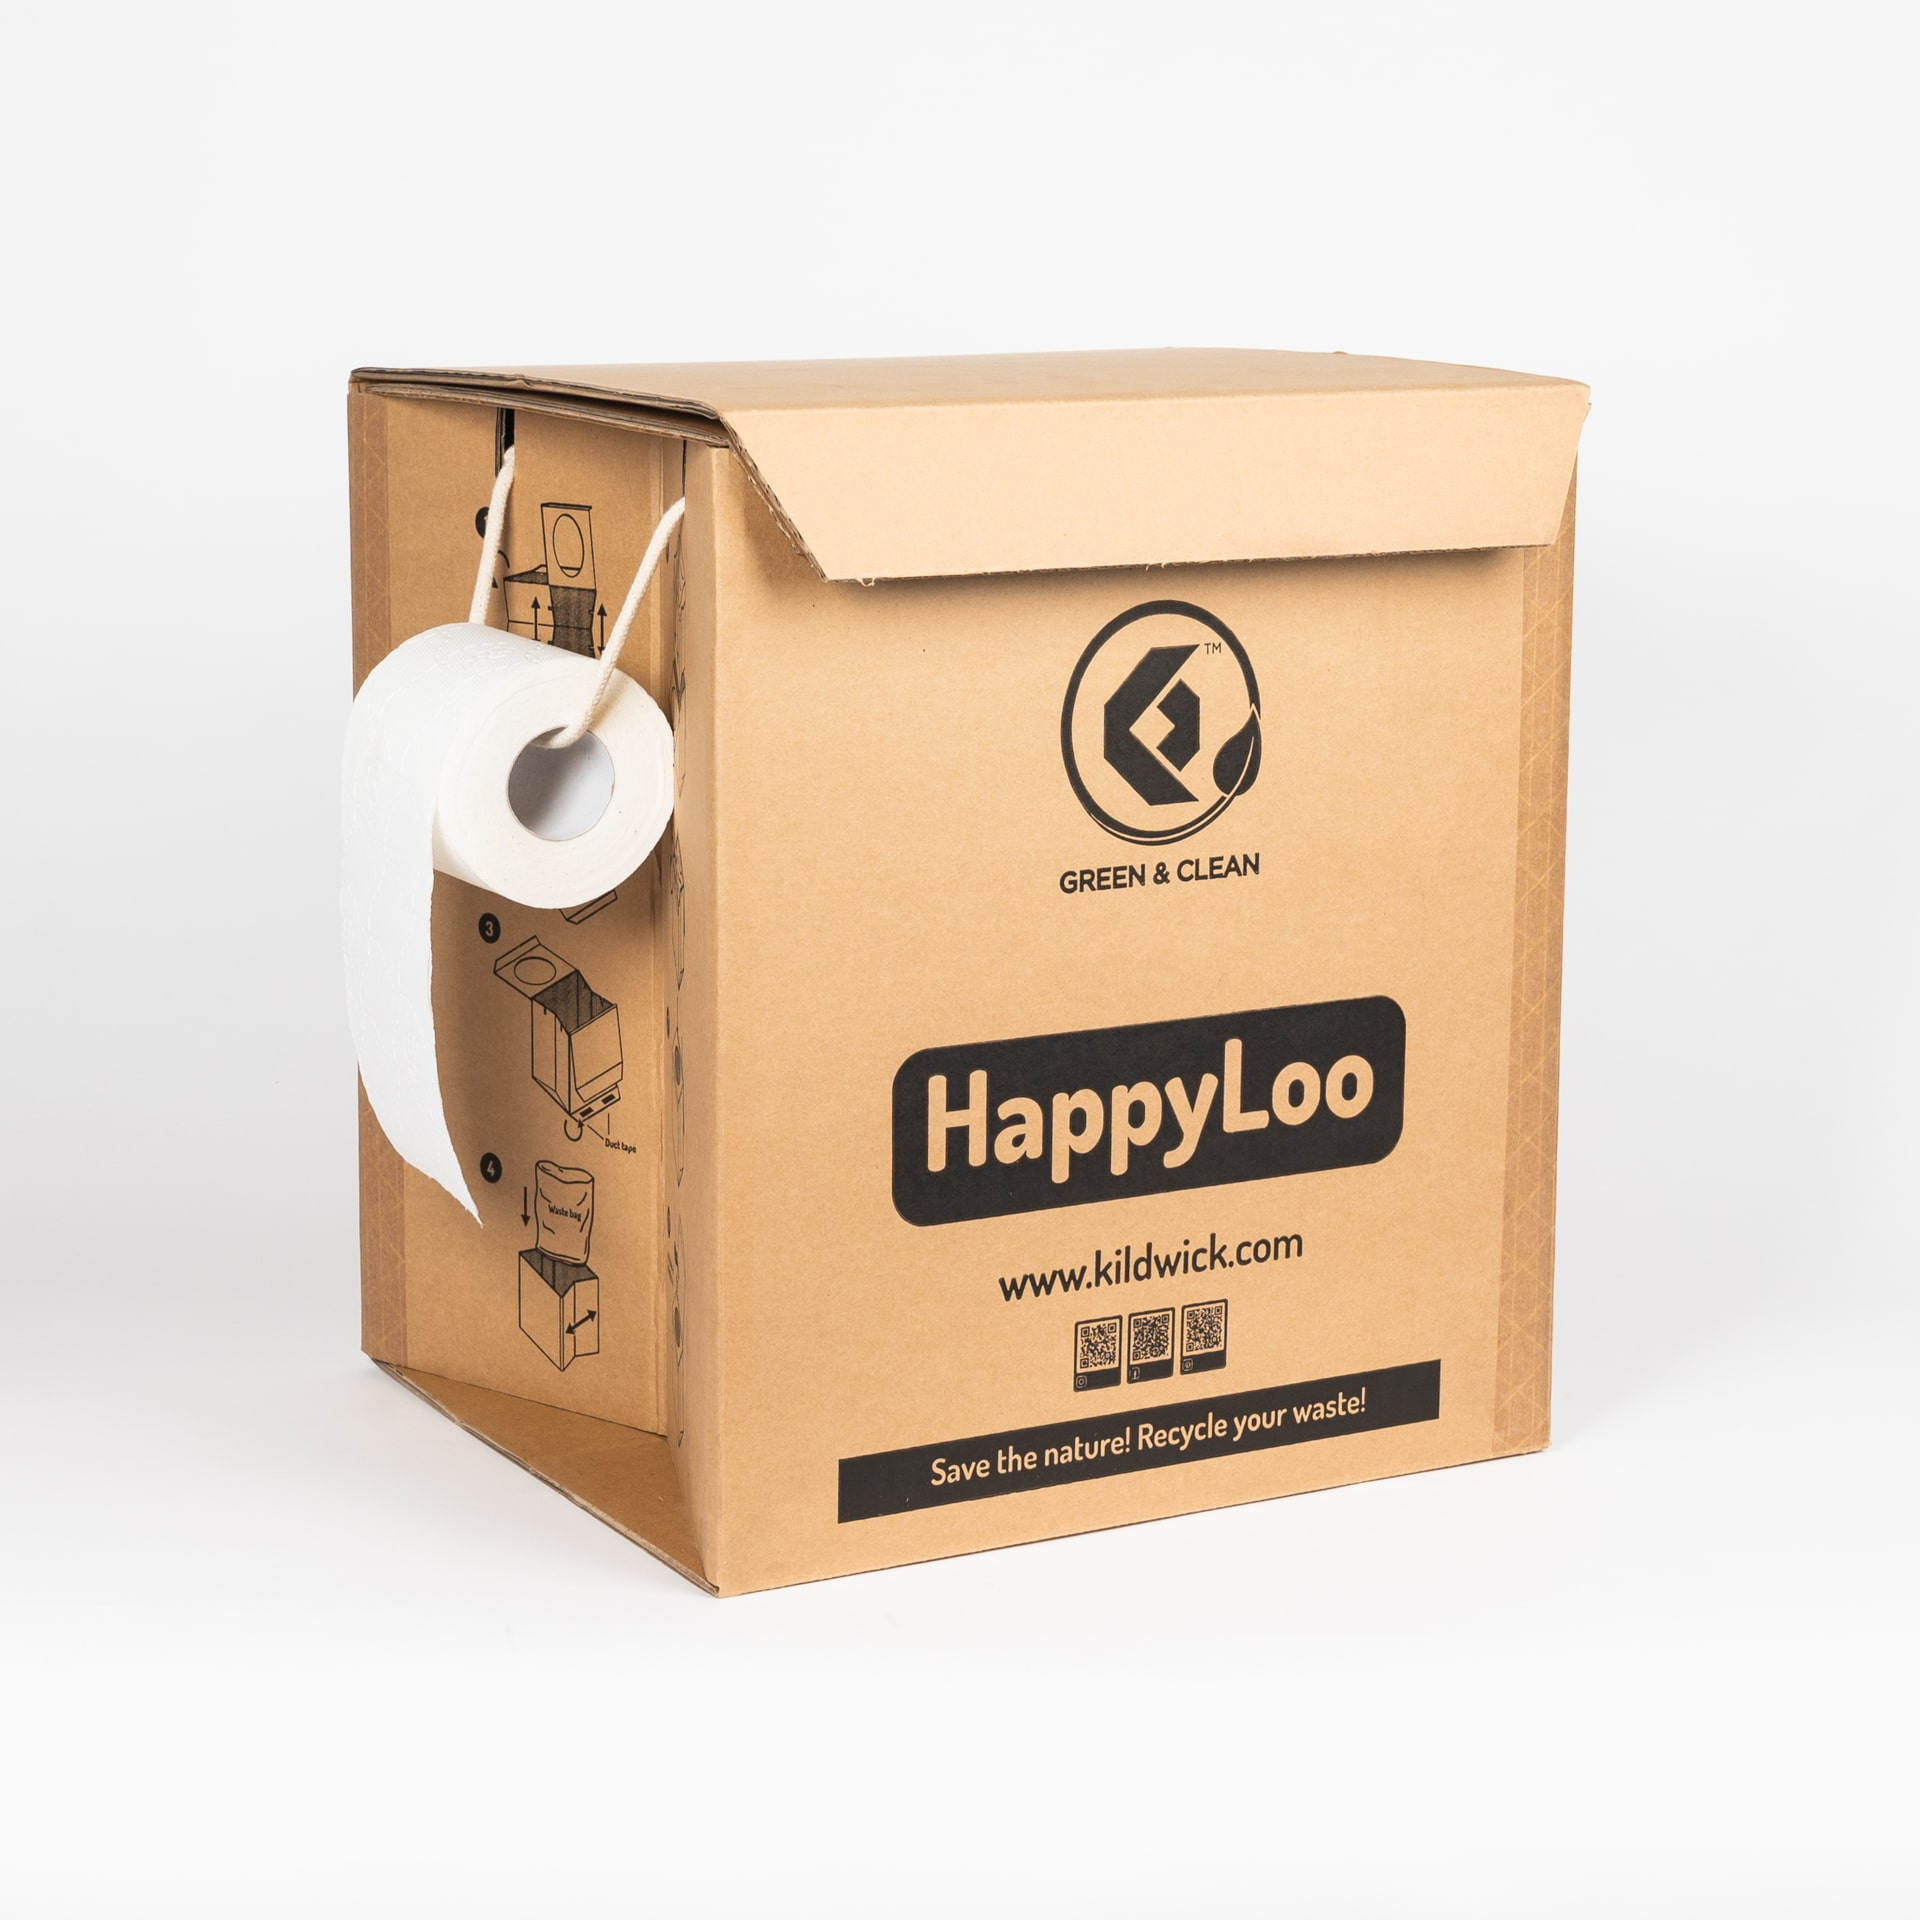 The Kildwick HappyLoo portable paper-toilet.